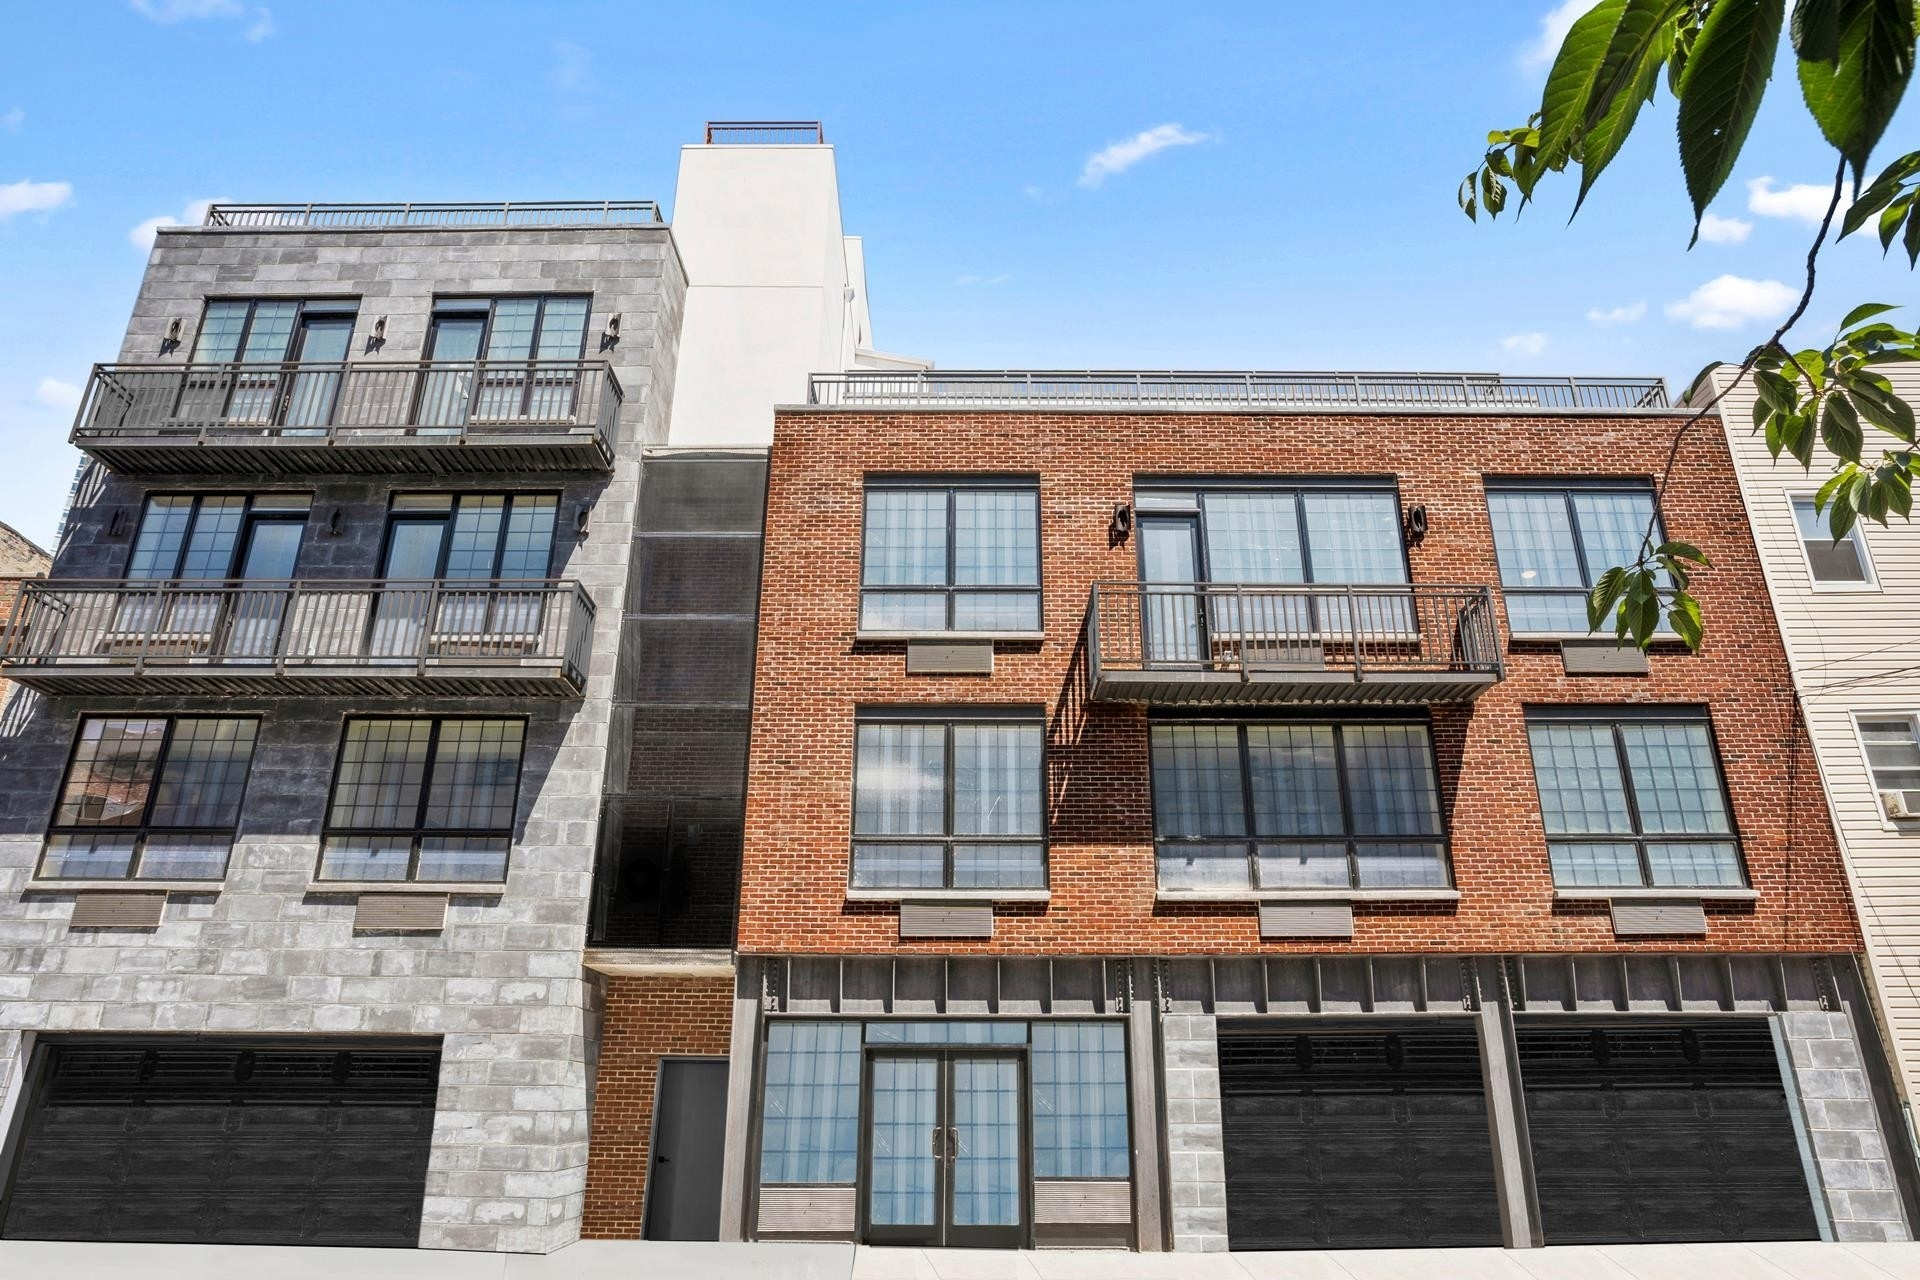 9. Condominiums for Sale at Greystone, 5-25 47TH RD , G2B Hunters Point, Queens, NY 11101